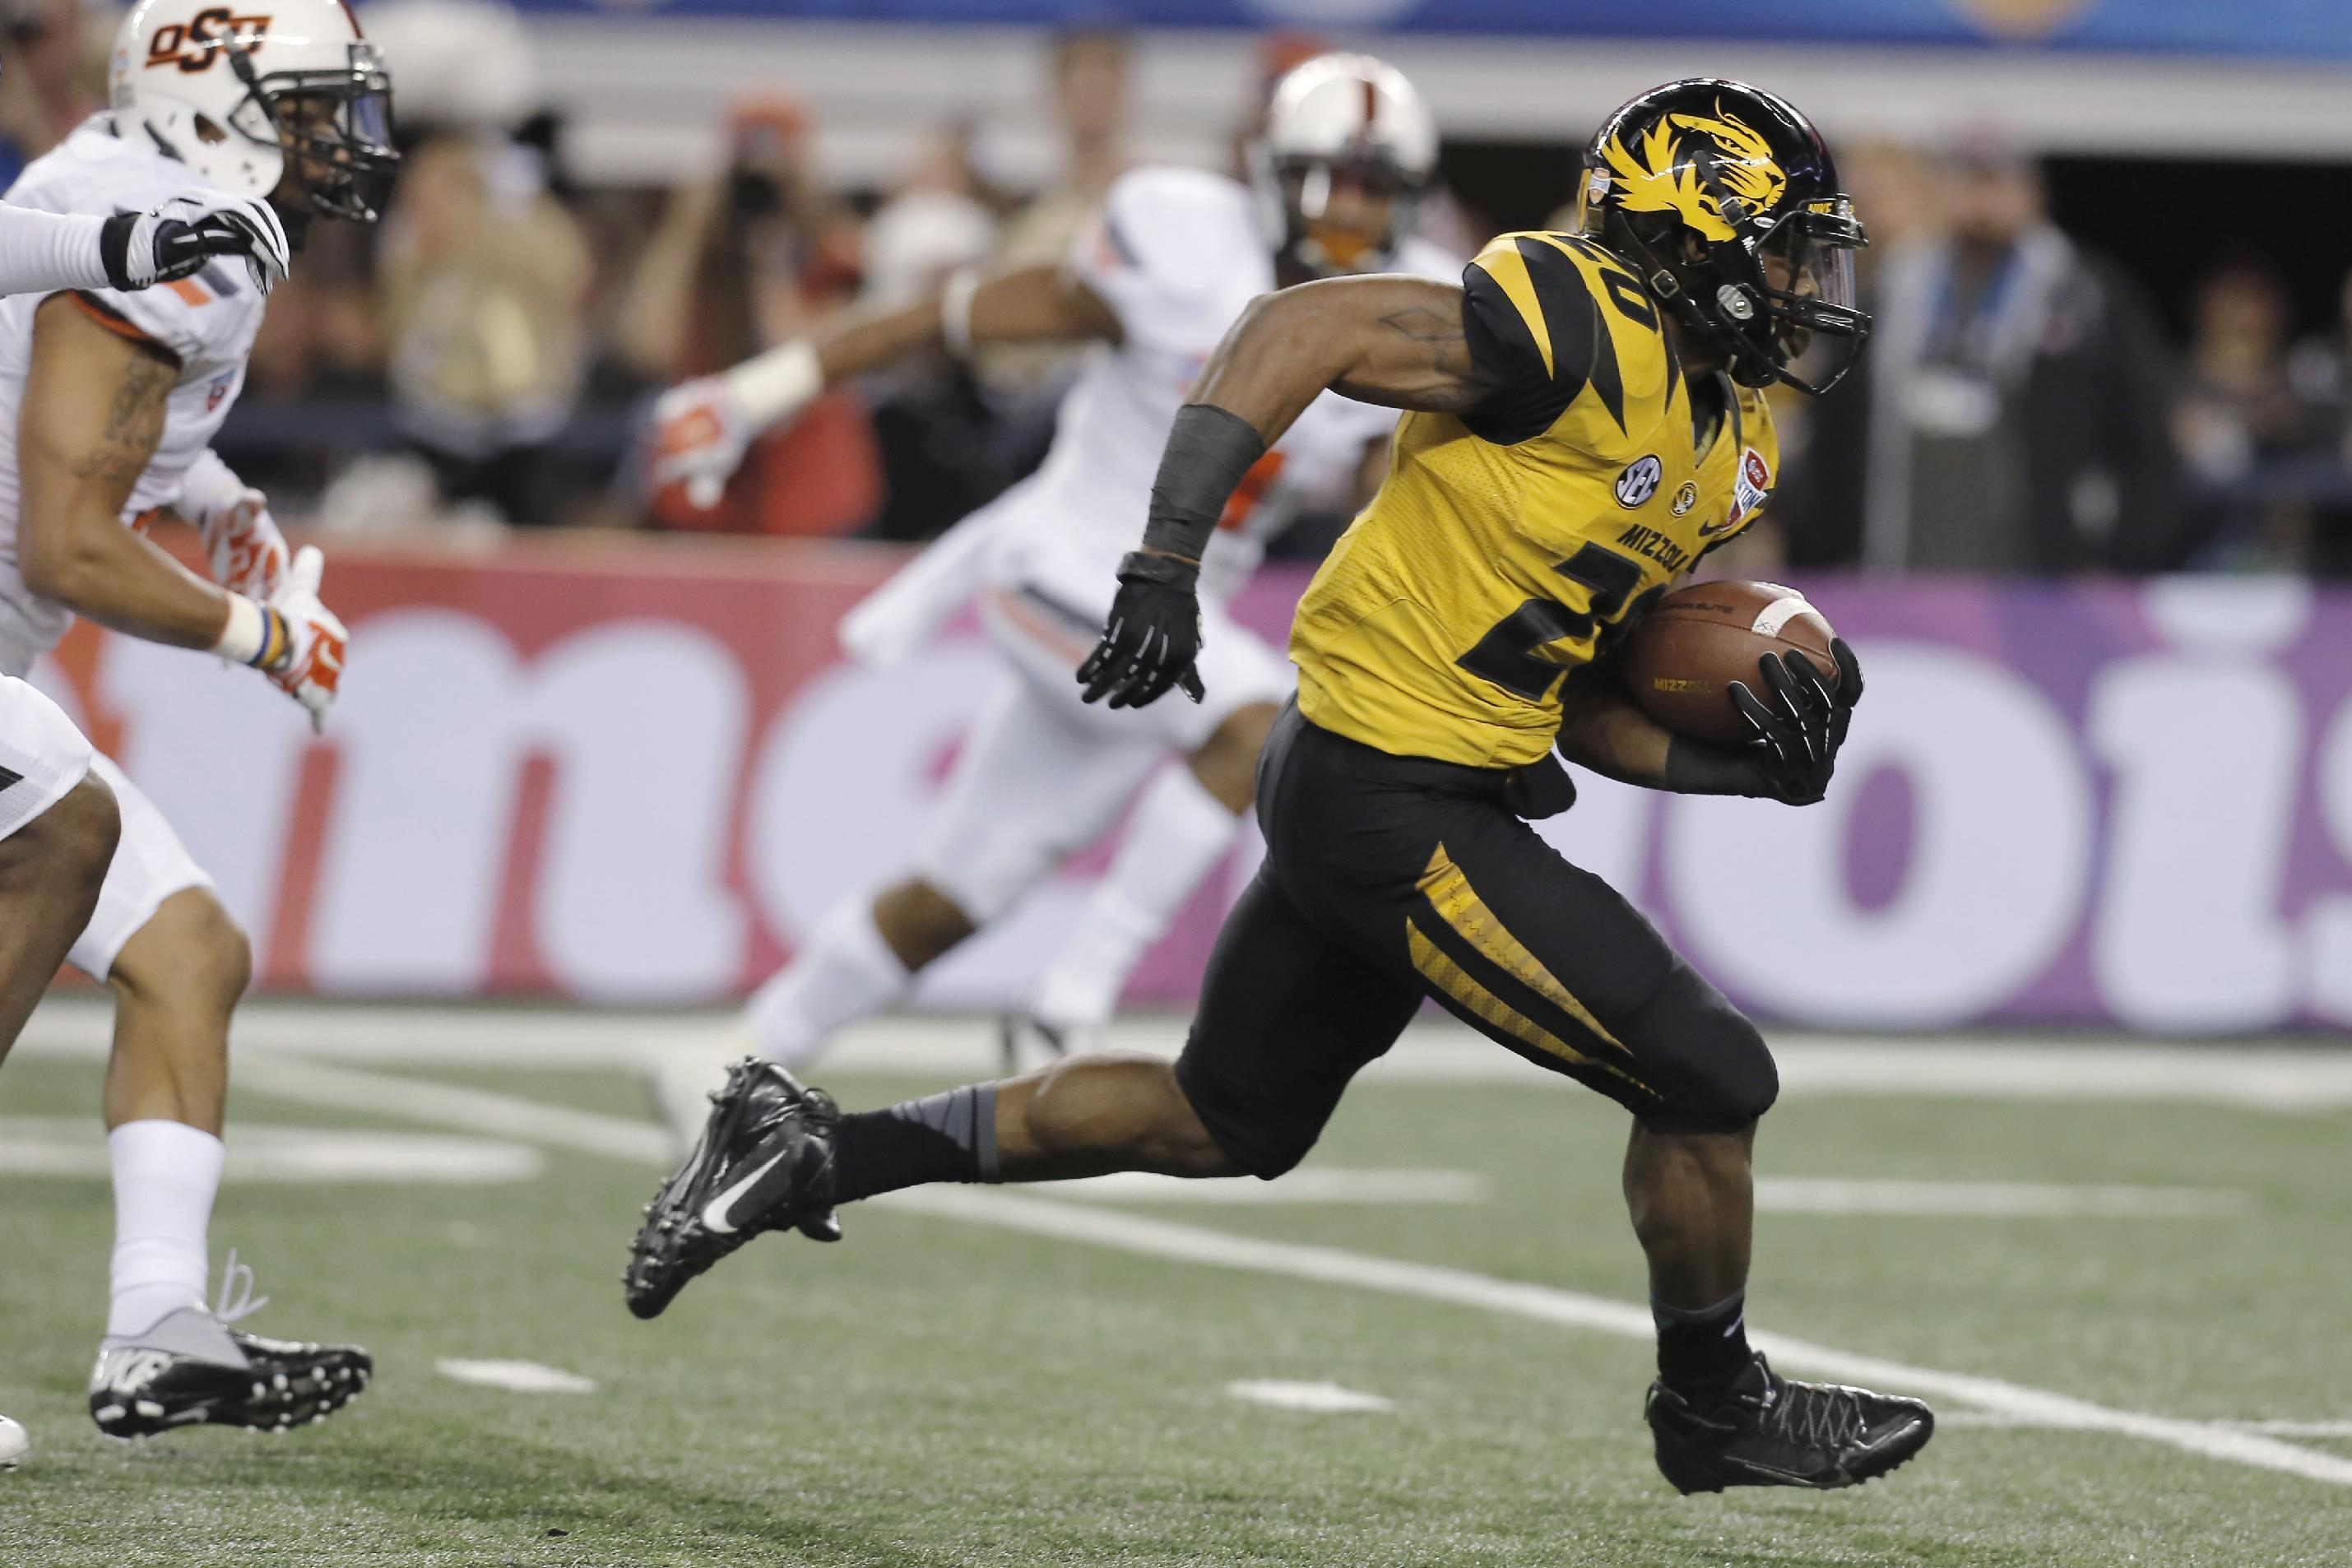 No. 9 Mizzou beats No. 13 OSU 41-31 in Cotton Bowl